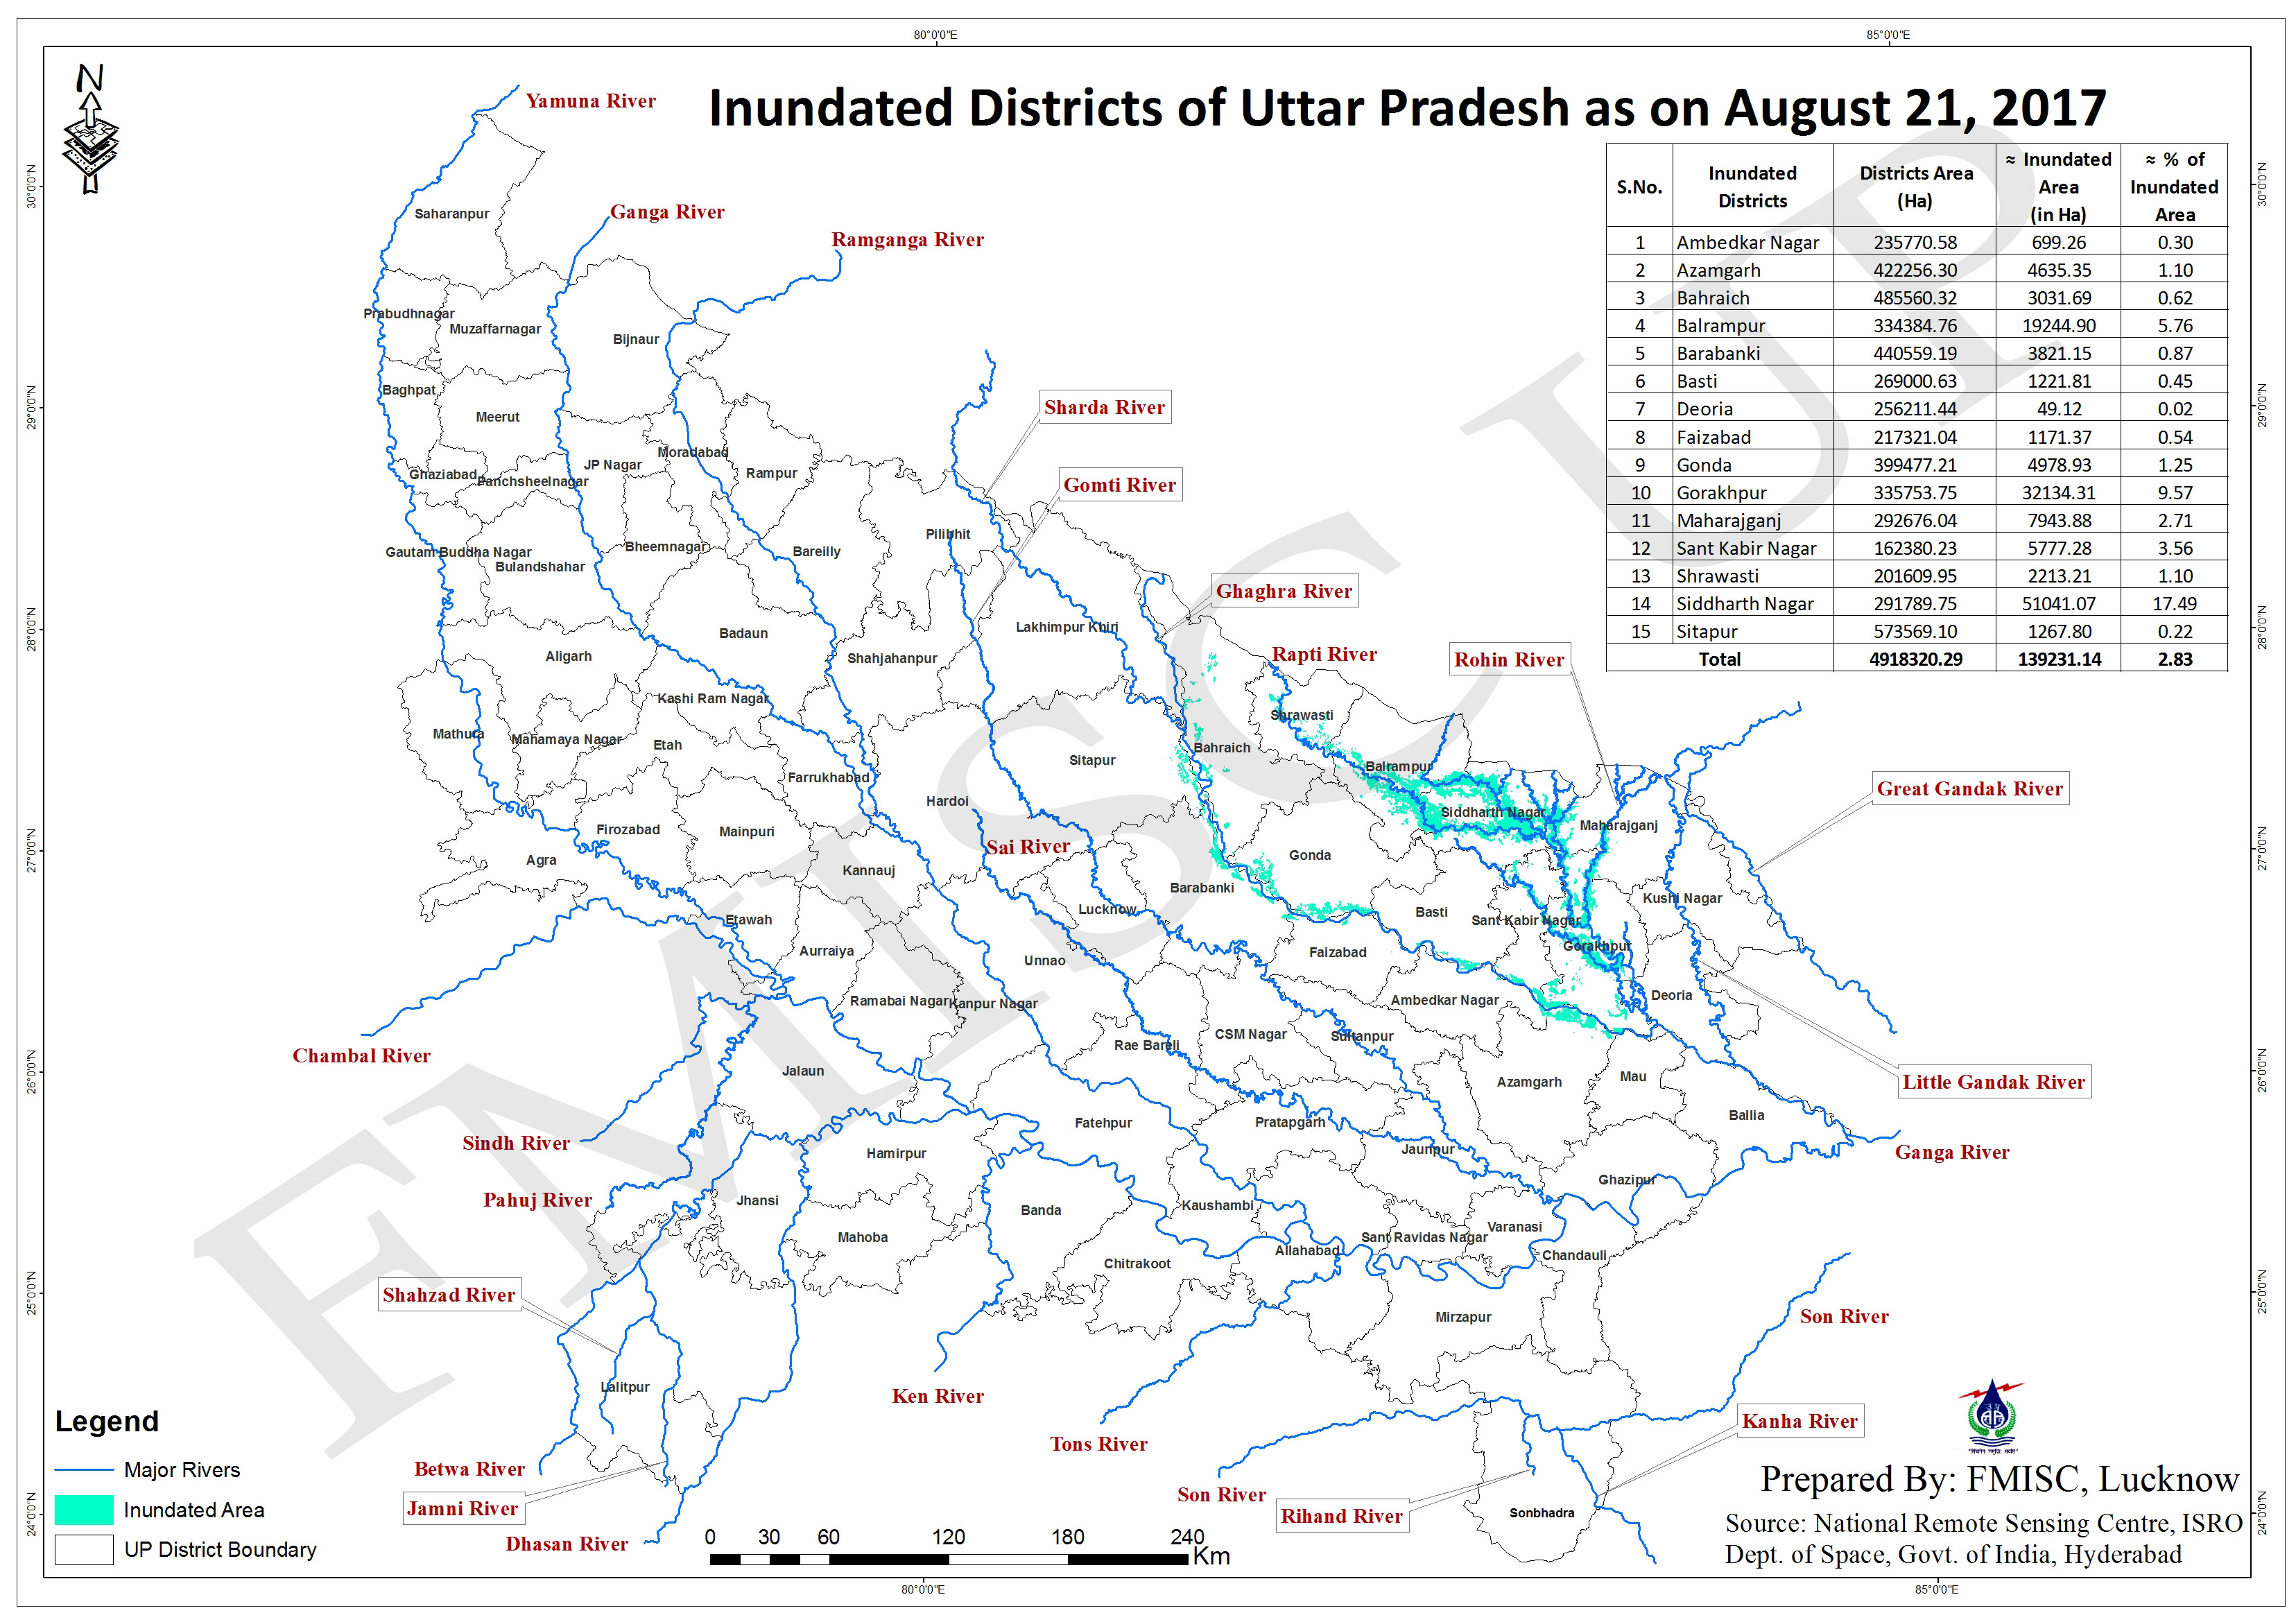 Inundation Map